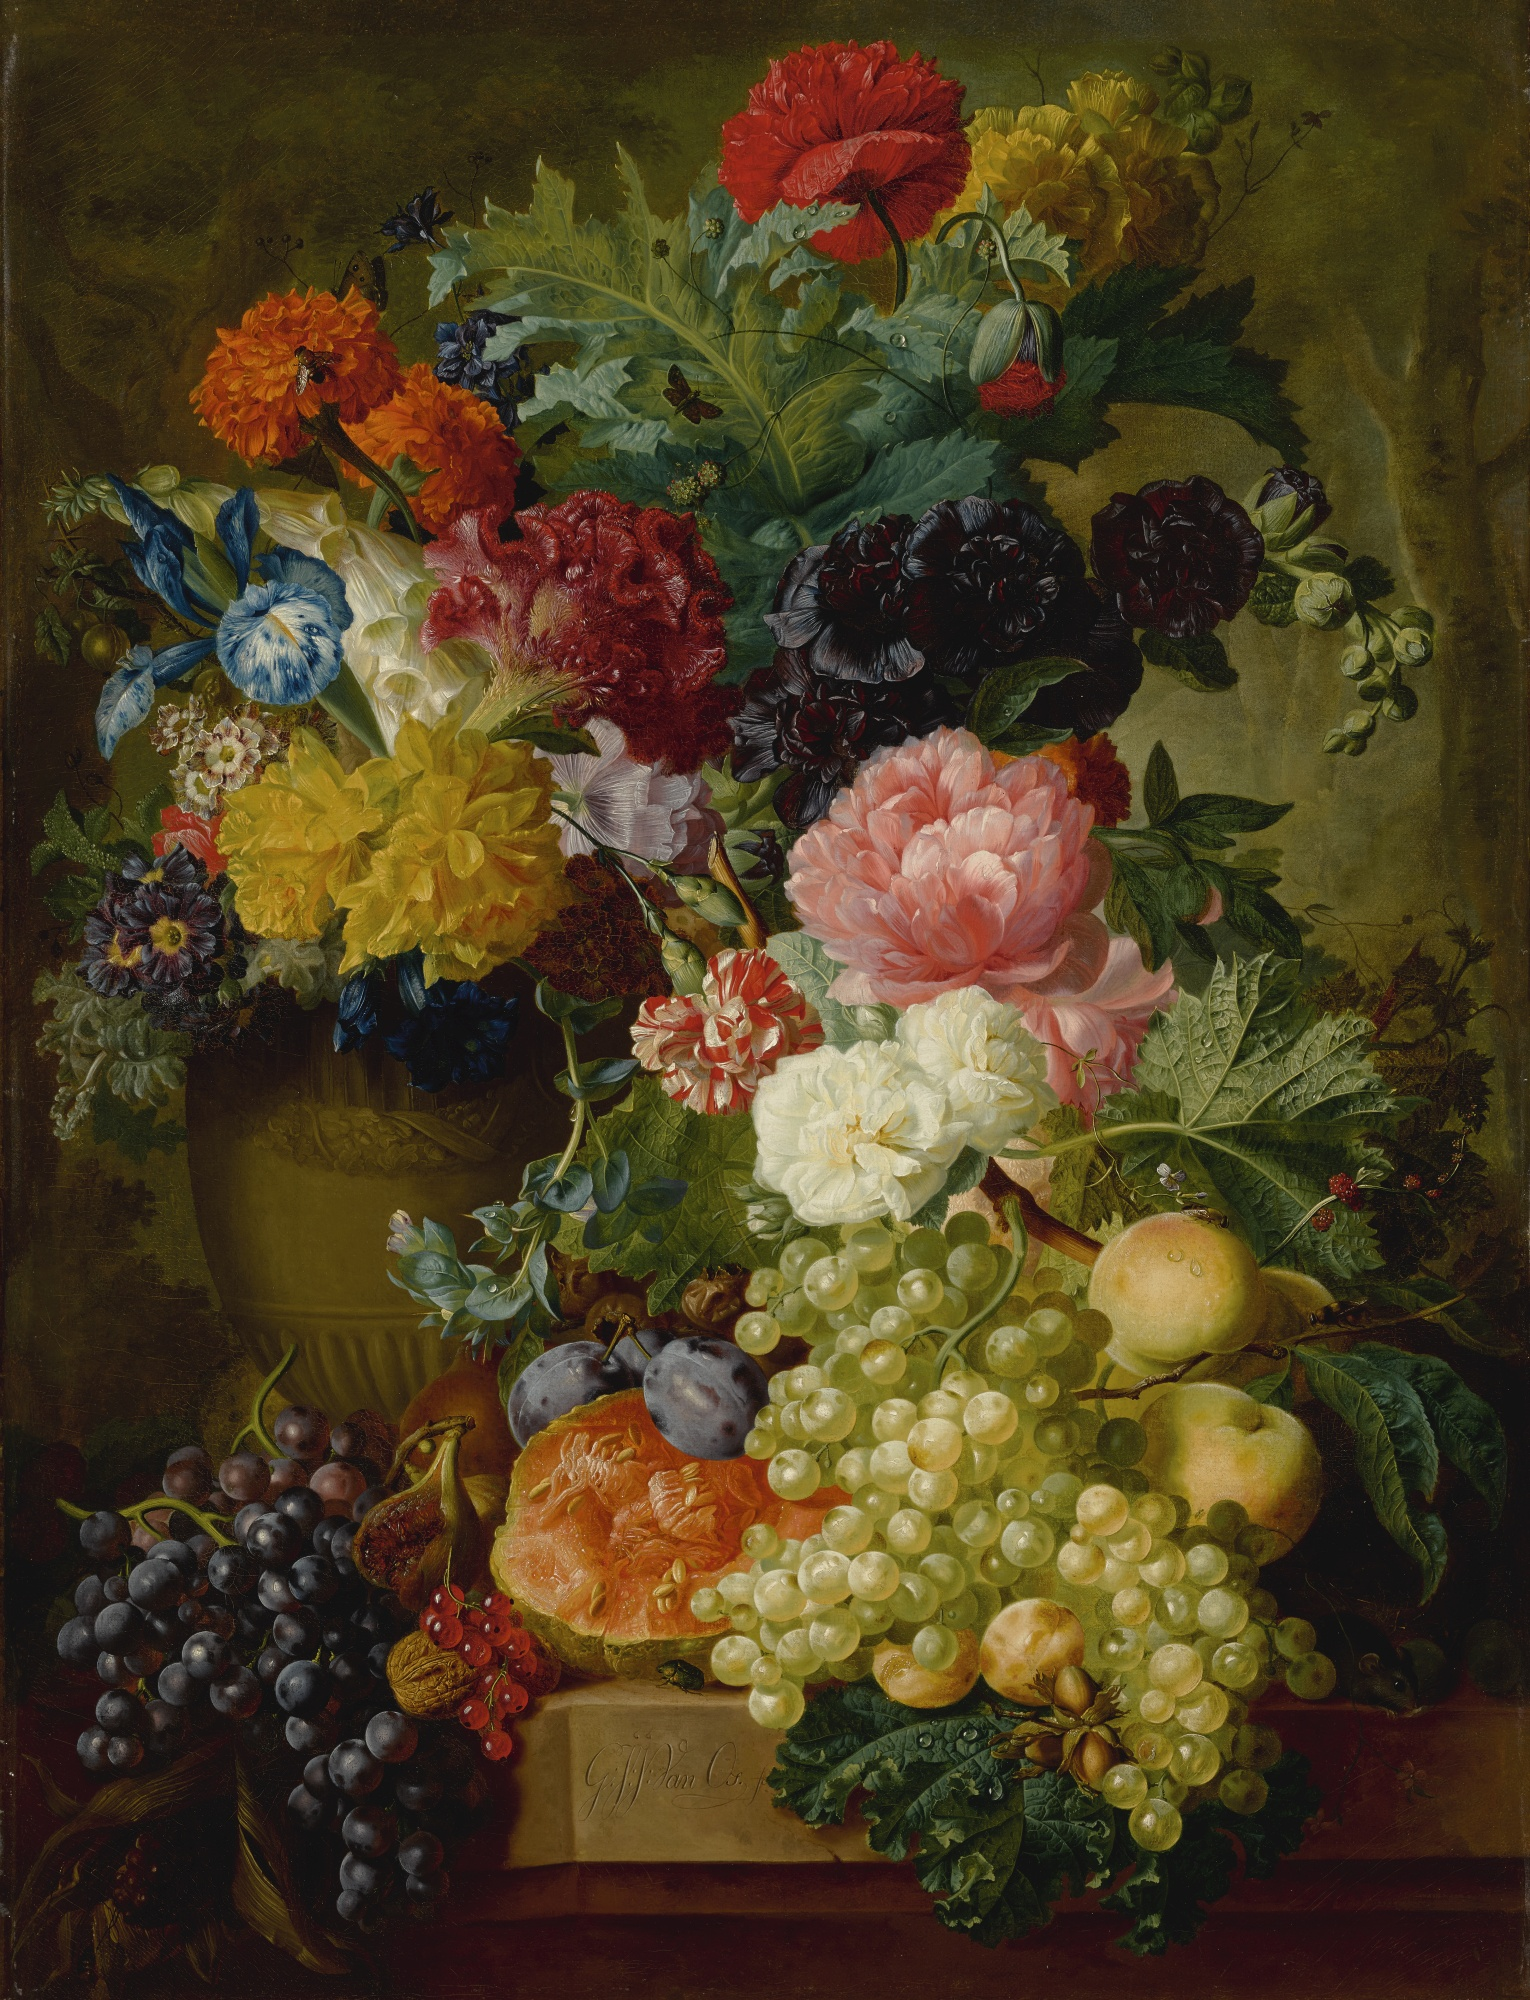 Still Life of Flowers and Fruit on a Stone Ledge, A Wooded Landscape Beyond, by Georgius Jacobus Johannes van Os